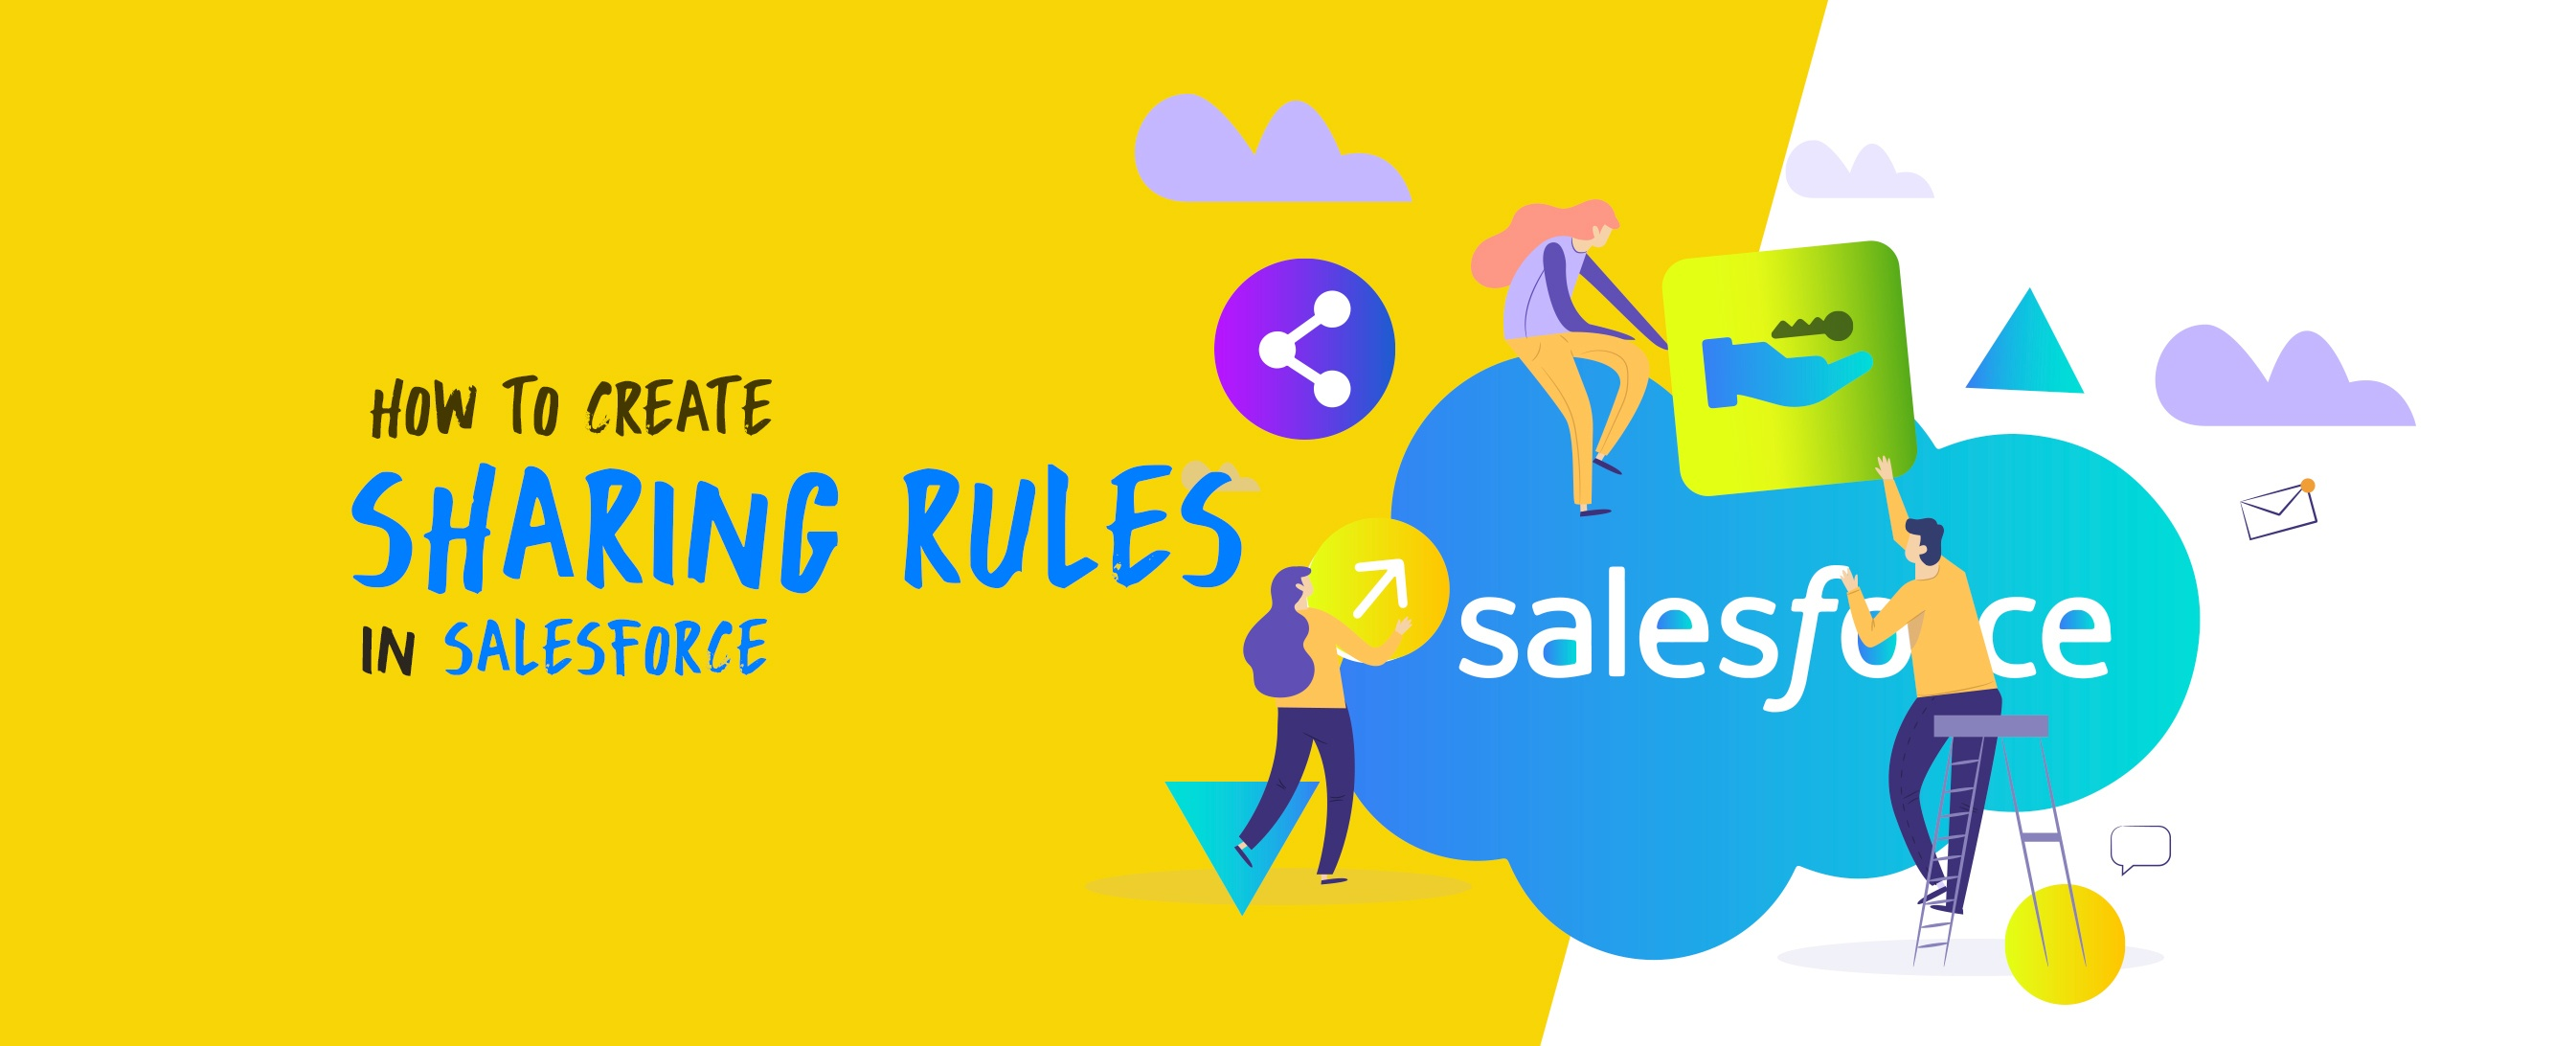 How-to-Create-Sharing-Rules-in-Salesforce